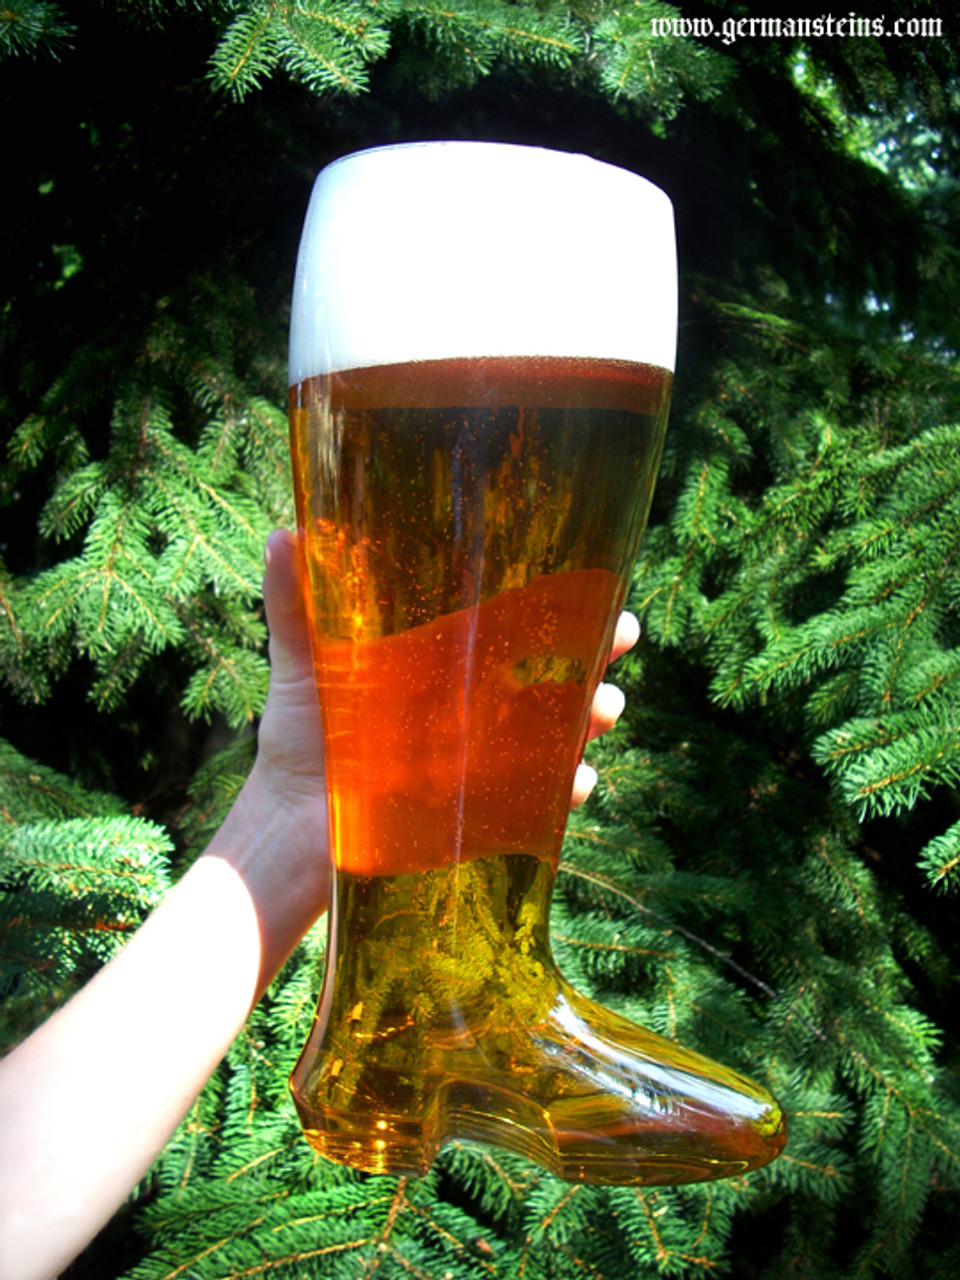 2L Plastic Beer Boot Being Held Aloft Outside